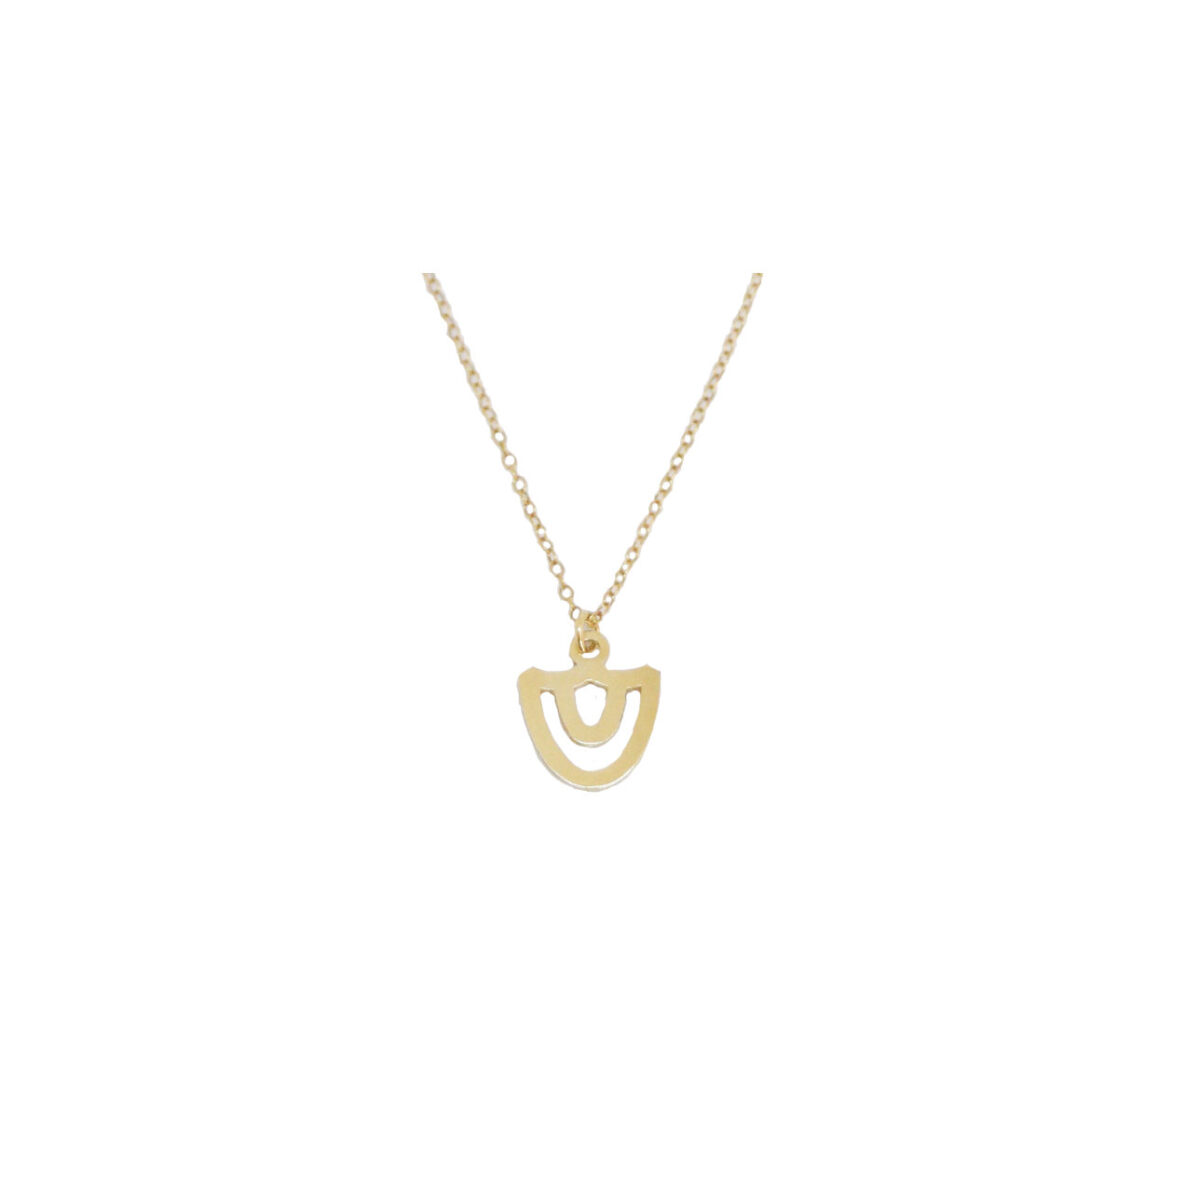 Tholos necklace II gold plated